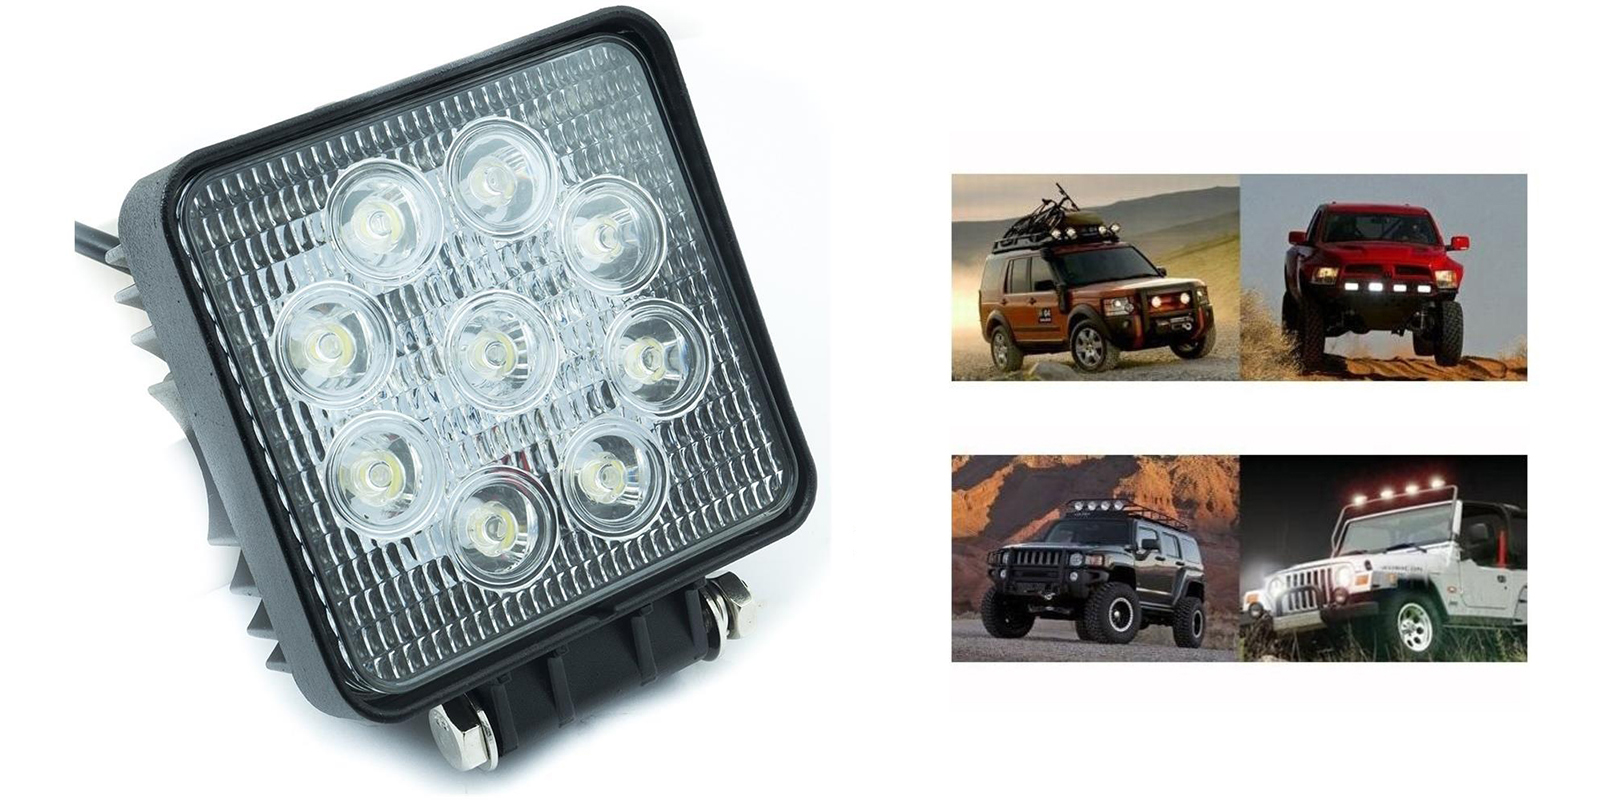 Faro led luce supplementare faro auto fuoristrada Suv quadrato 9 led 48w